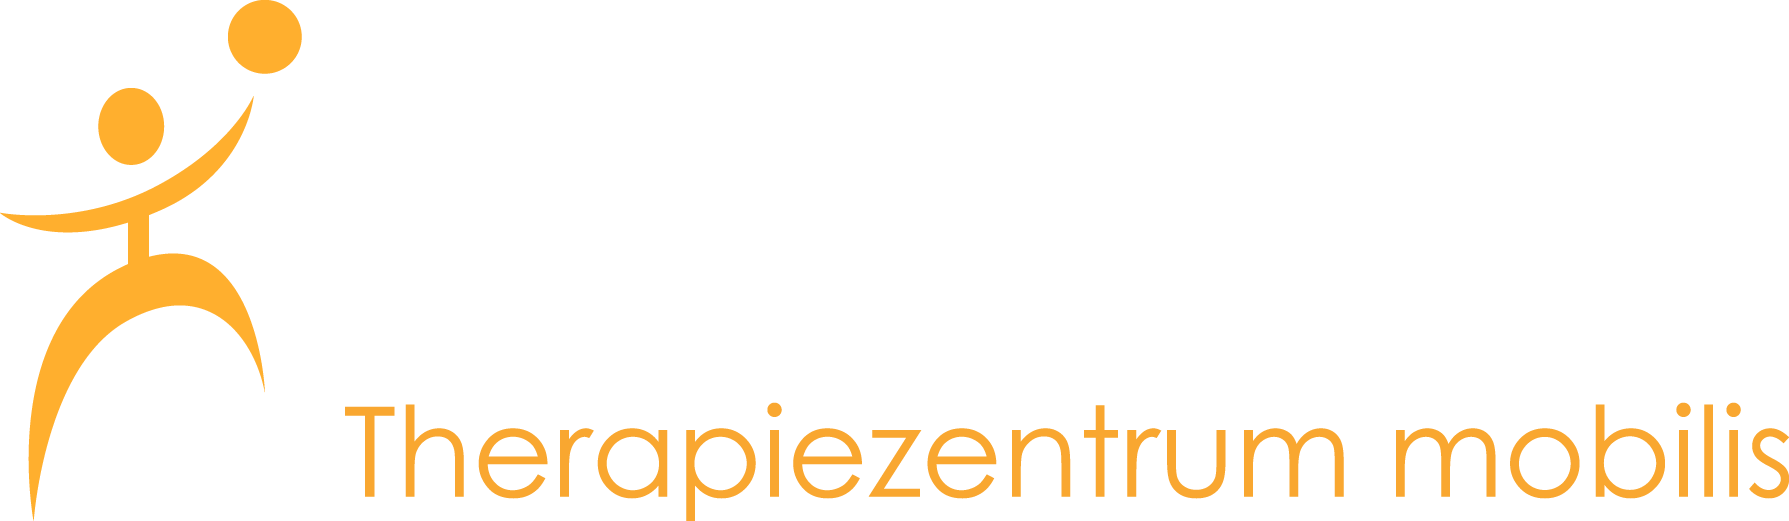 Logo Therapiezentrum mobilis